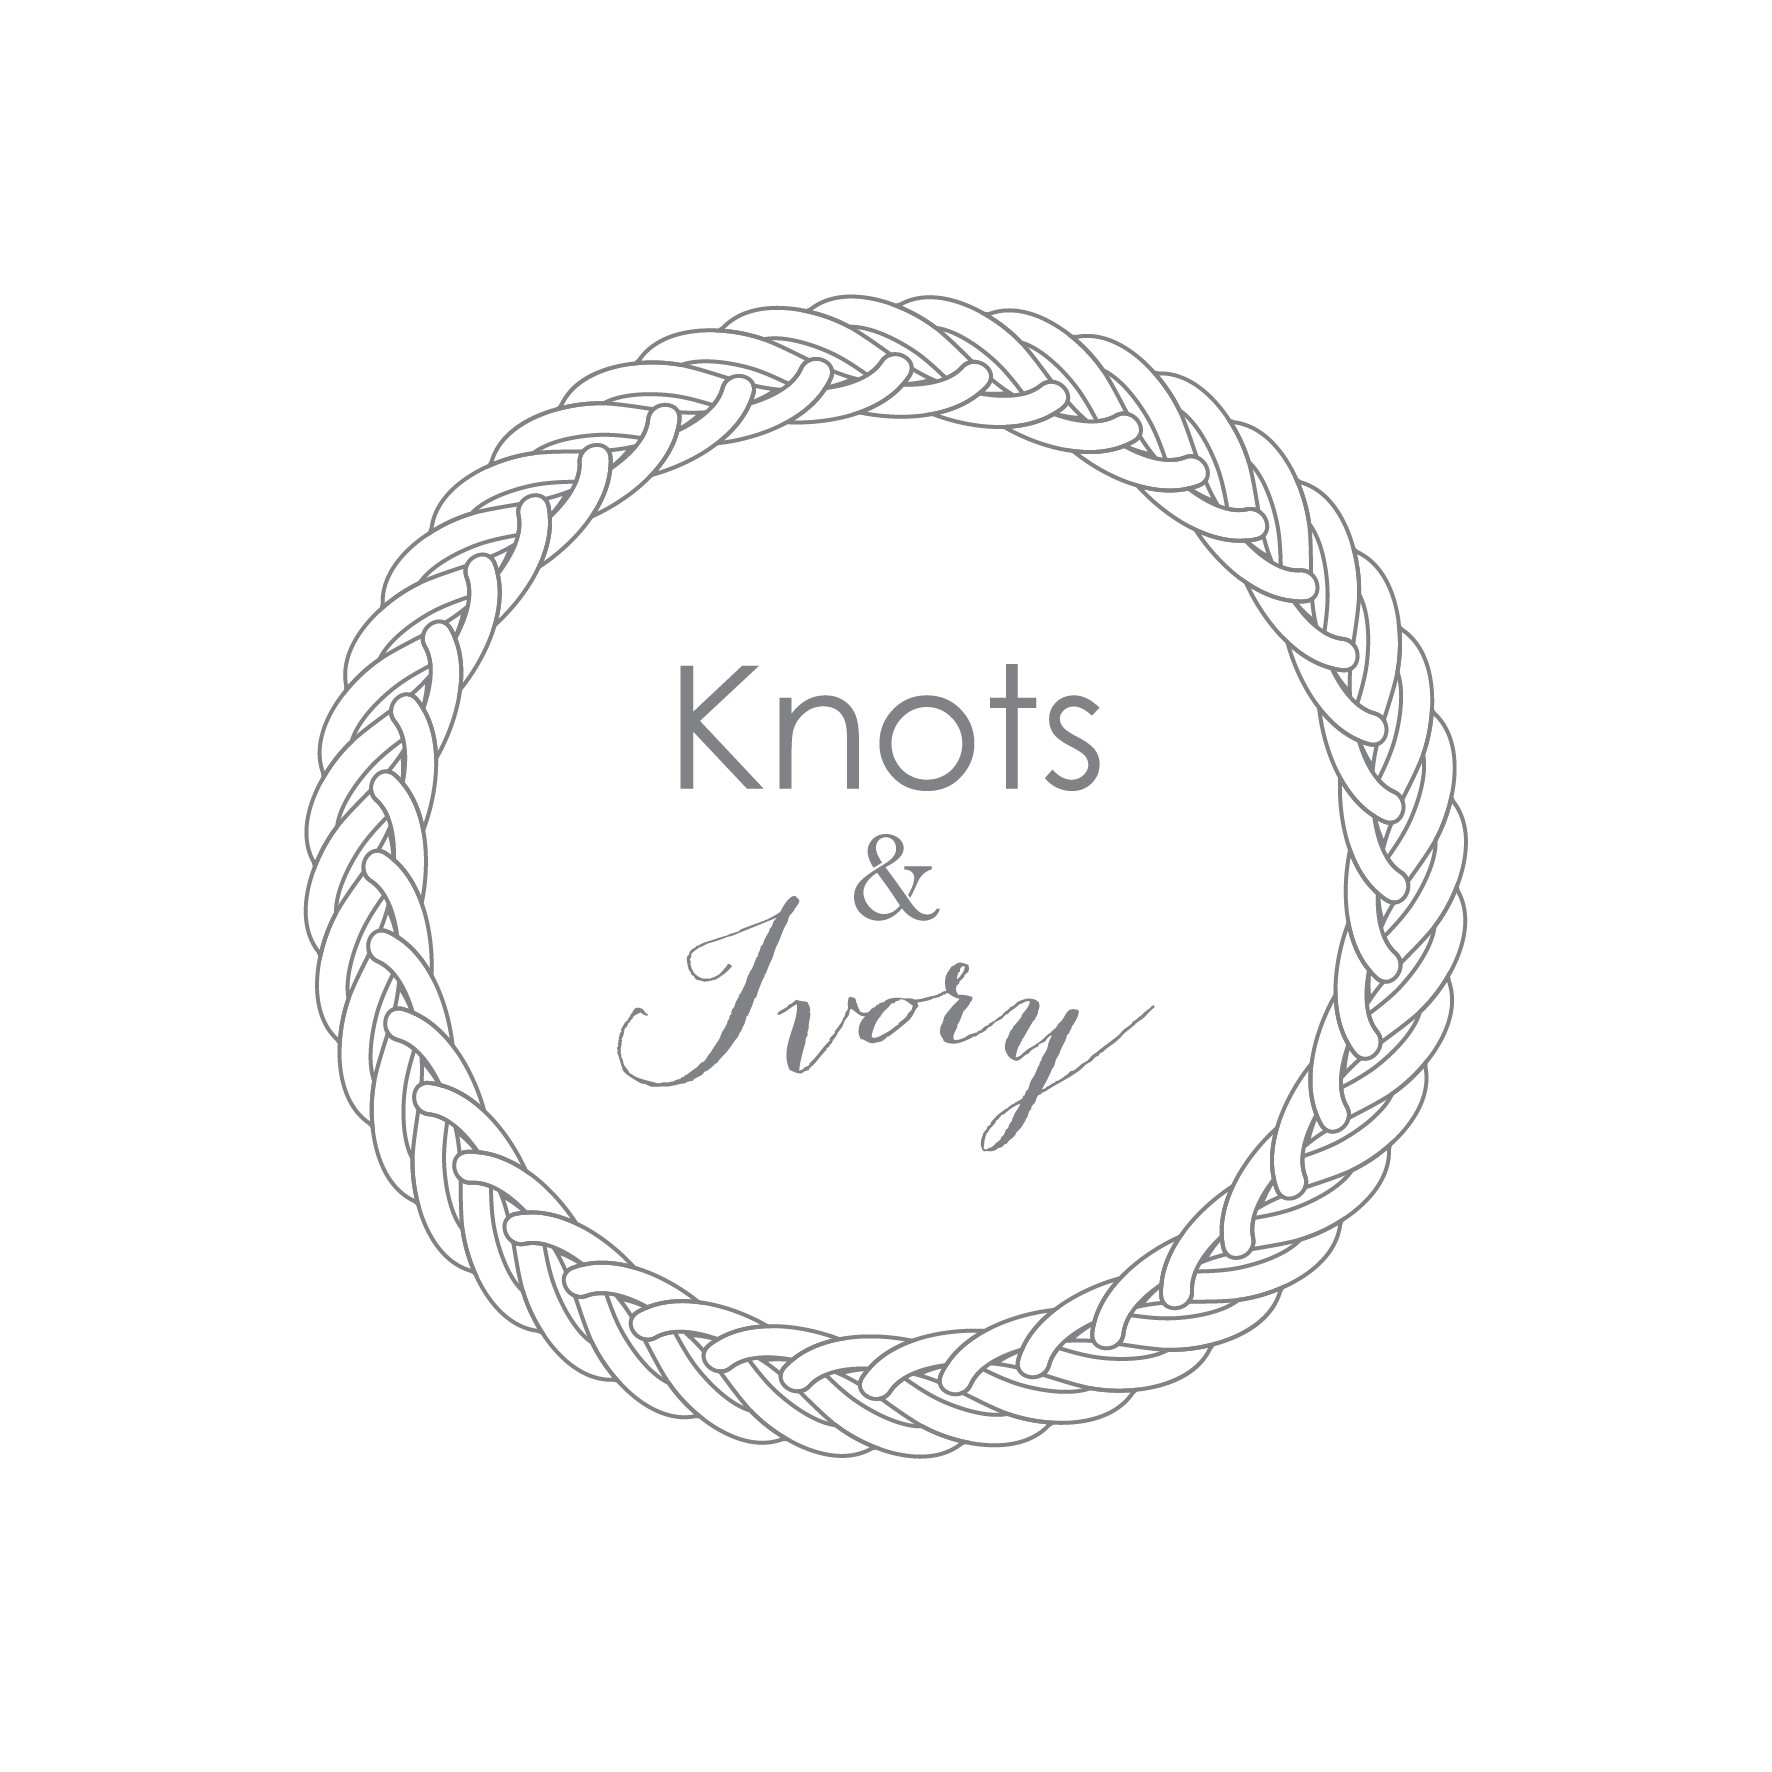 Design a bohemian, artistic new logo for Knots & Ivory, a macrame and rentals company